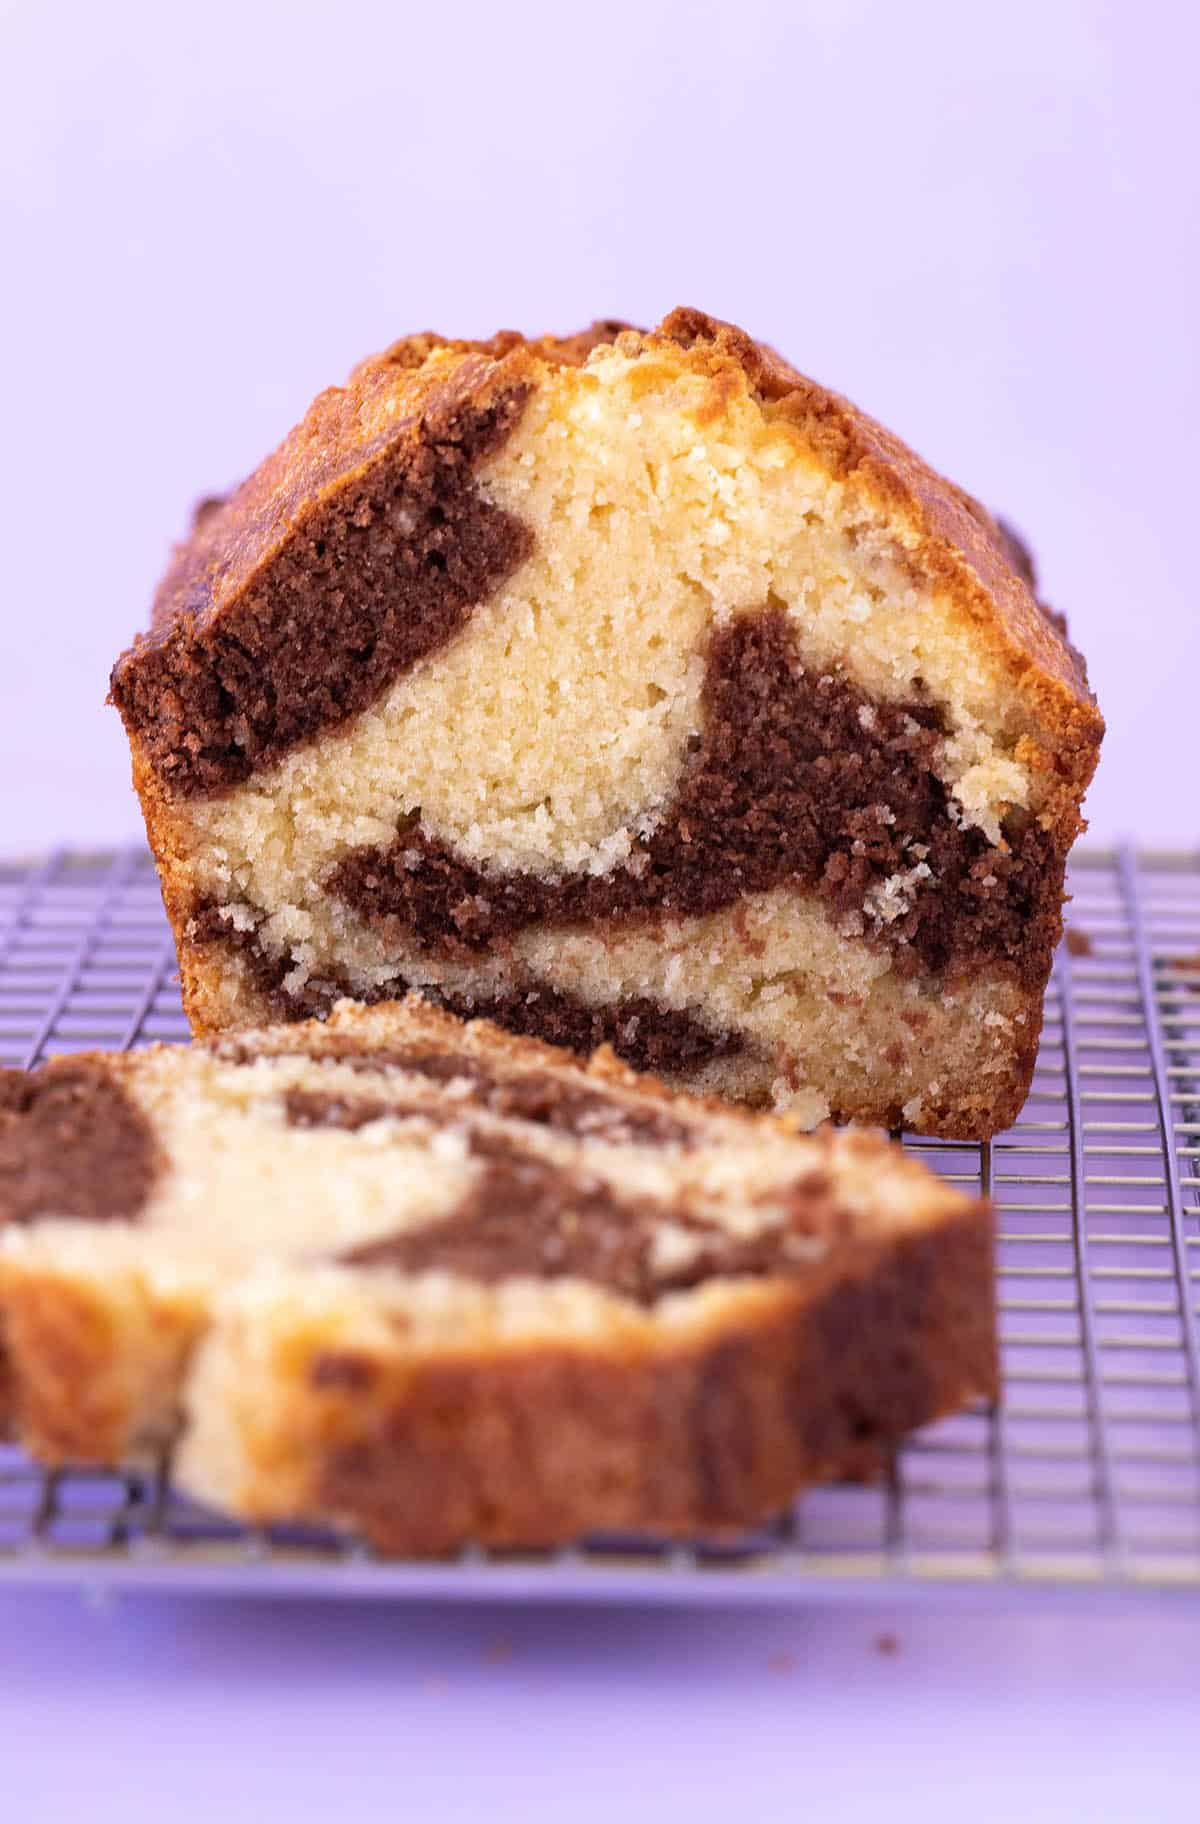 A Marble Loaf Cake cut into thick slices.